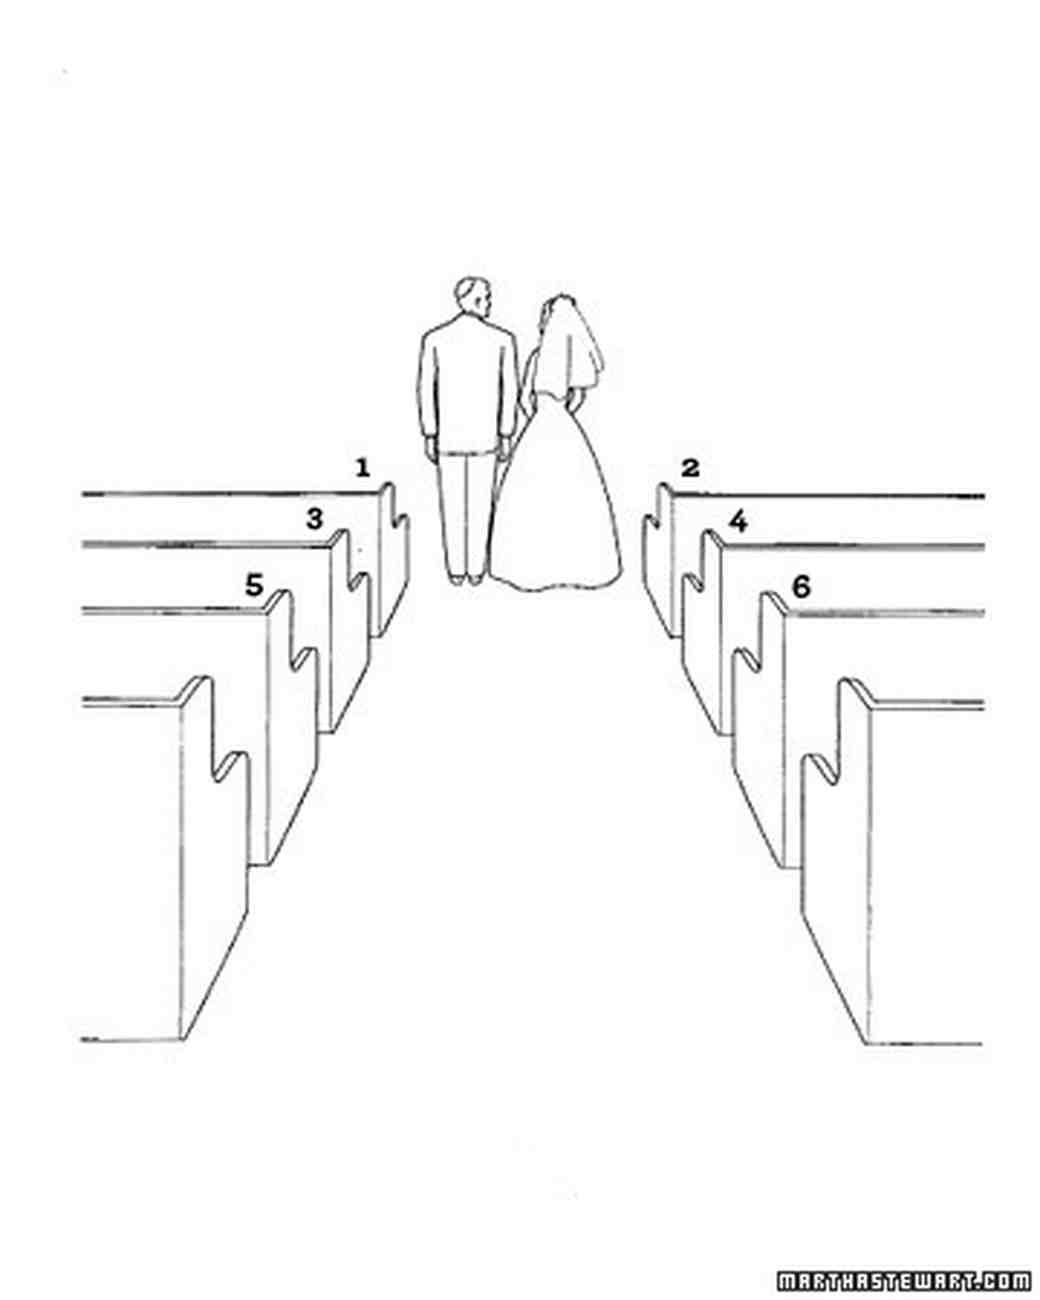 Diagram Your Big Day: Jewish Wedding Ceremony Basics | Martha ...